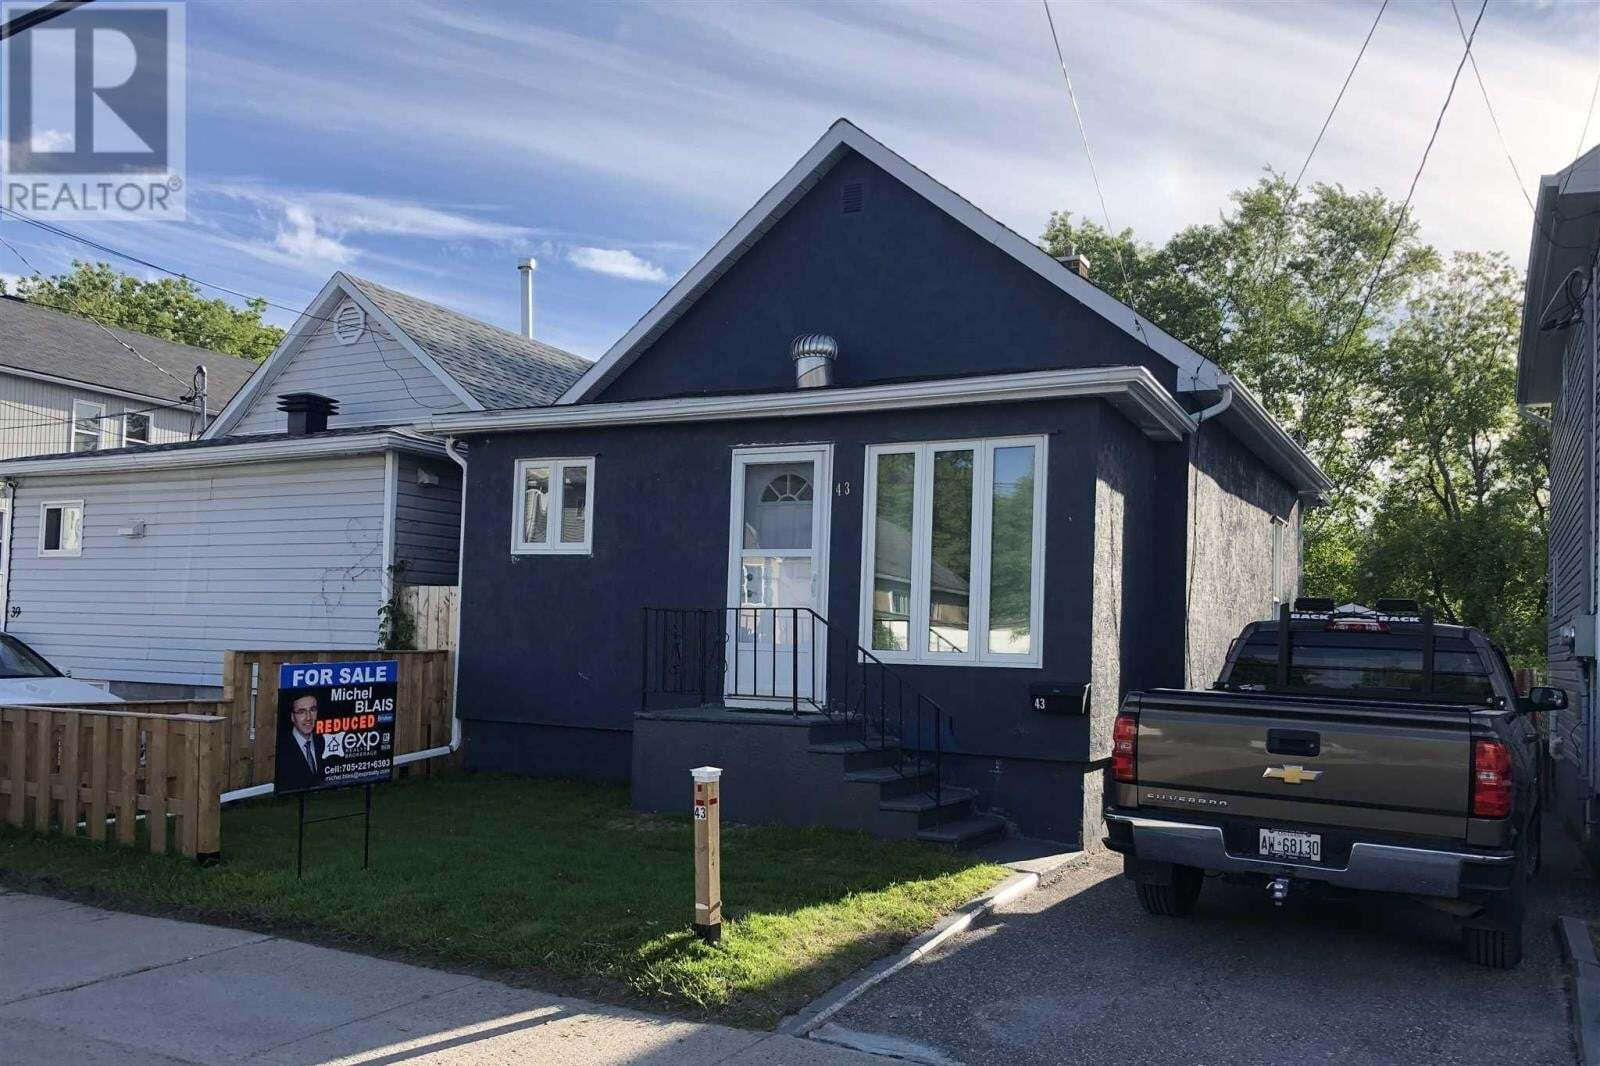 House for sale at 43 Maple St N Timmins Ontario - MLS: TM200509